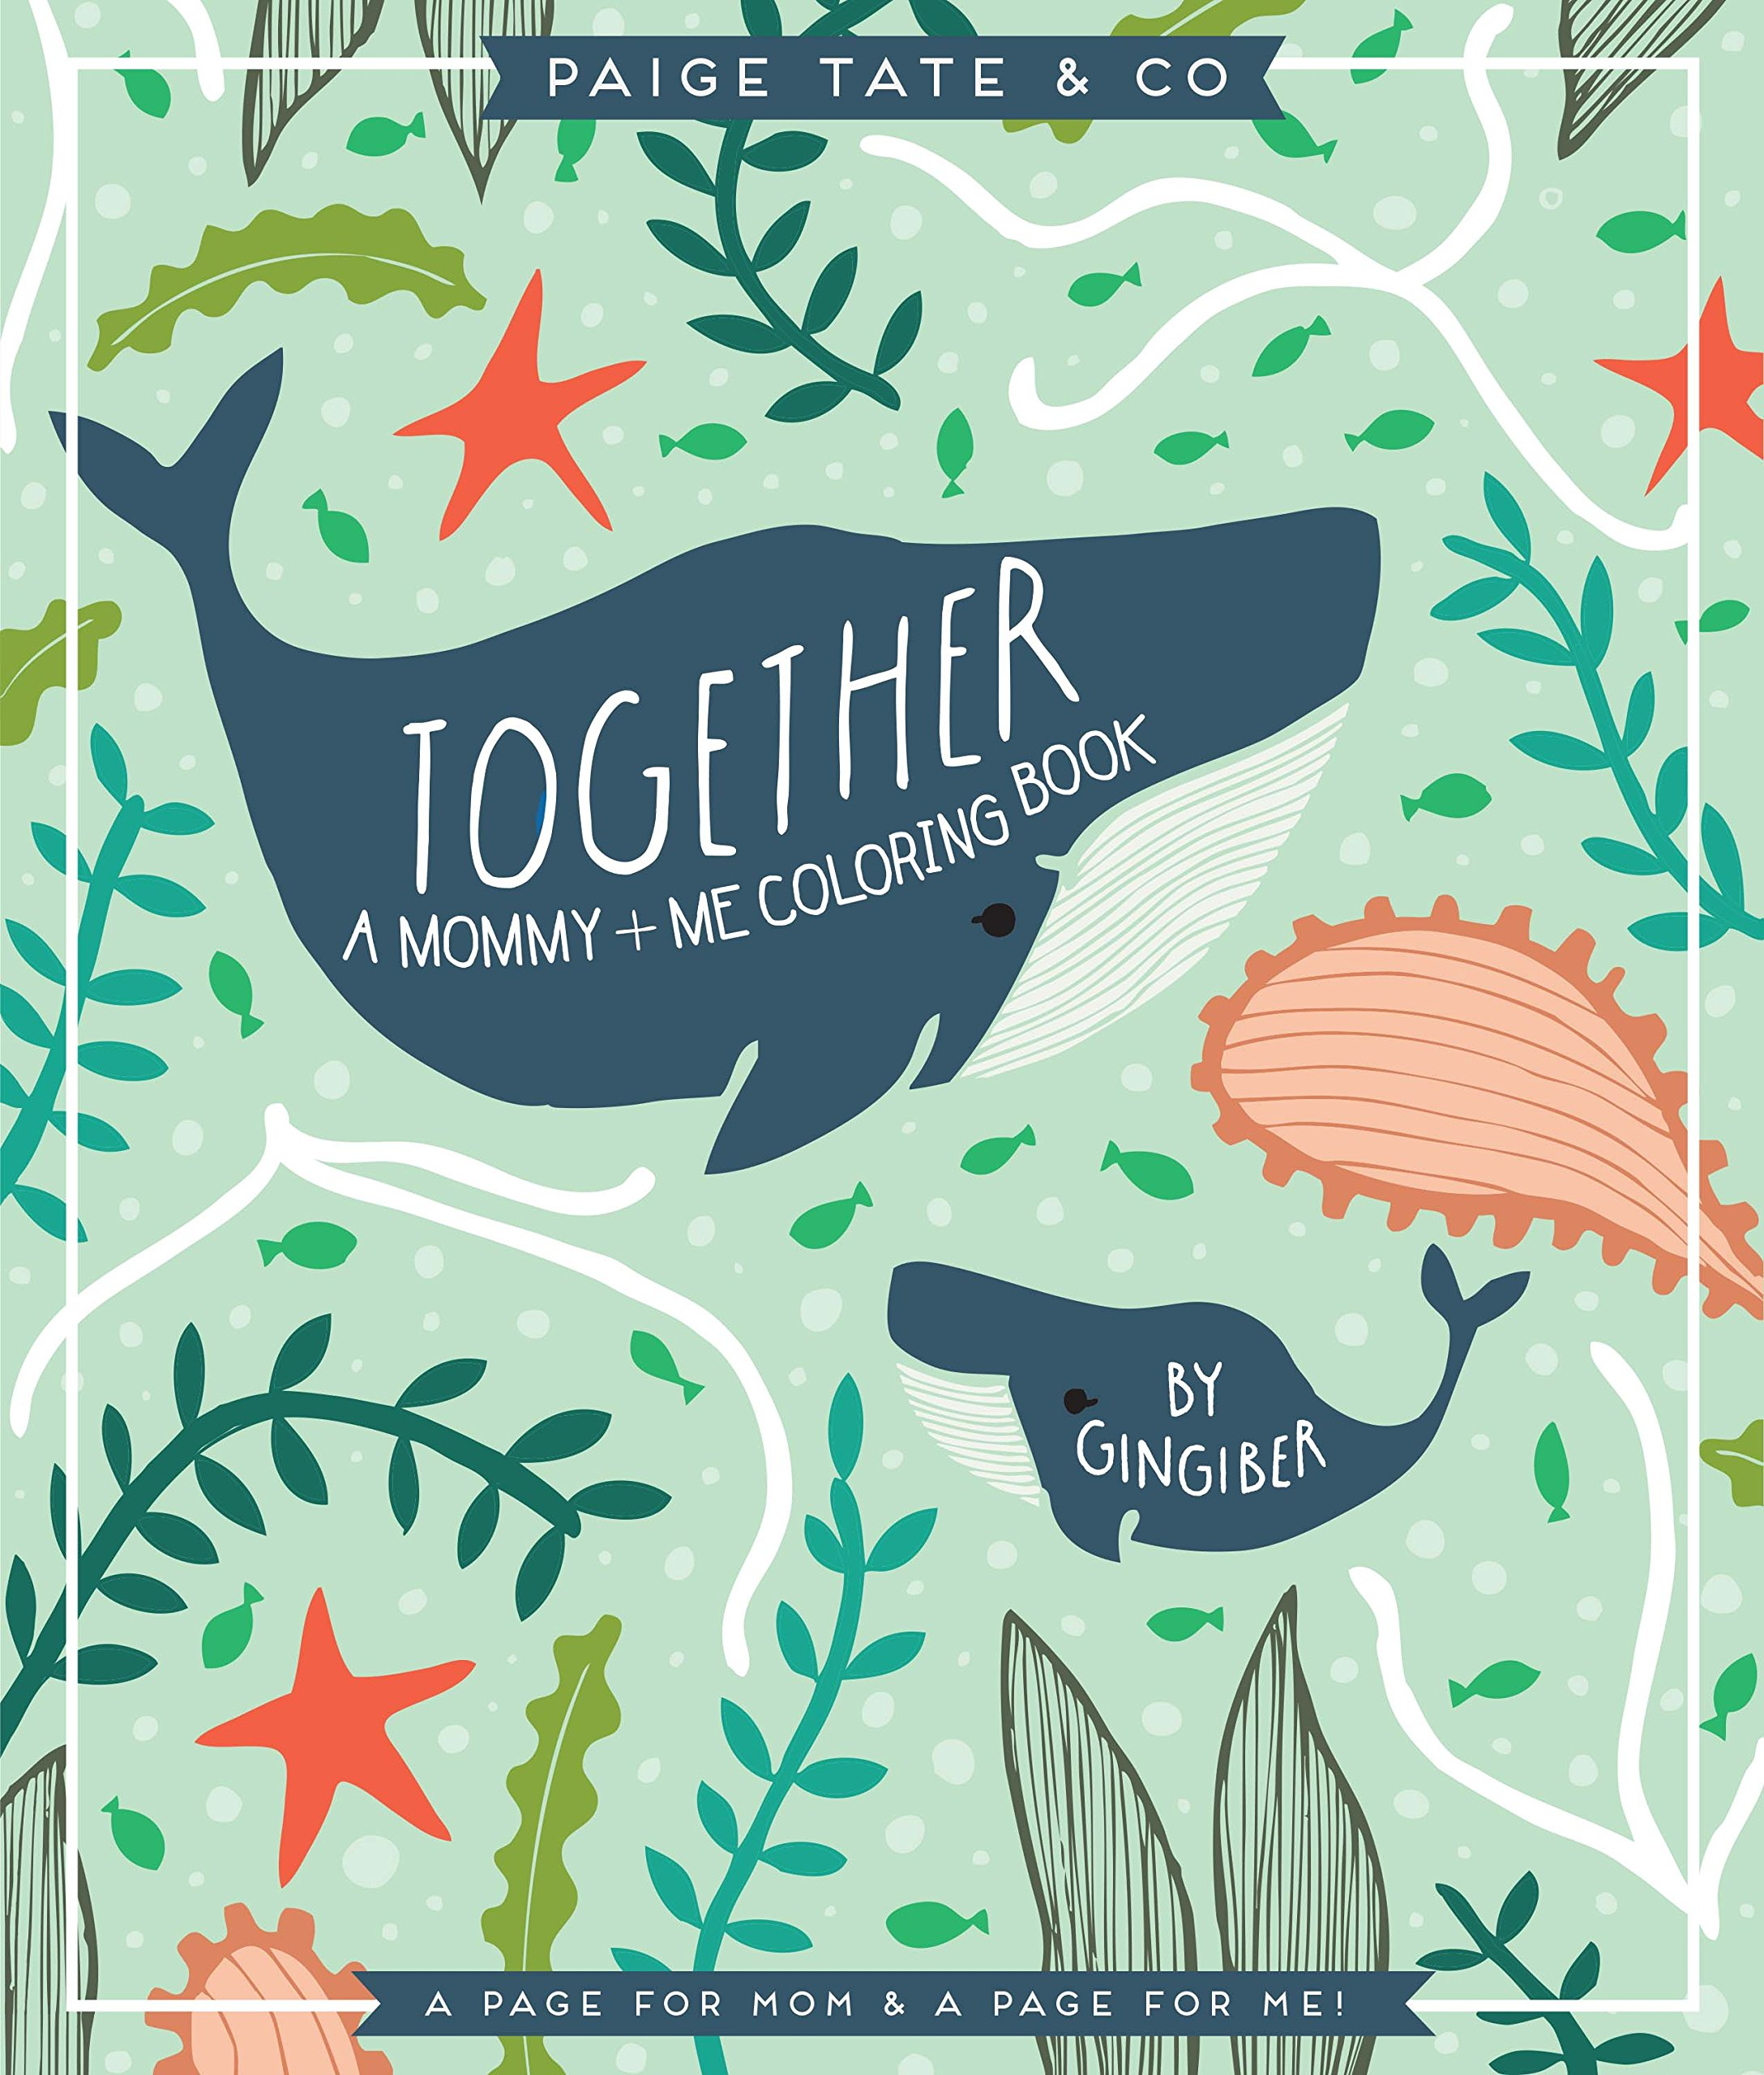 Together: A Mommy + Me Coloring Book: Stacie Bloomfield, Paige Tate ...